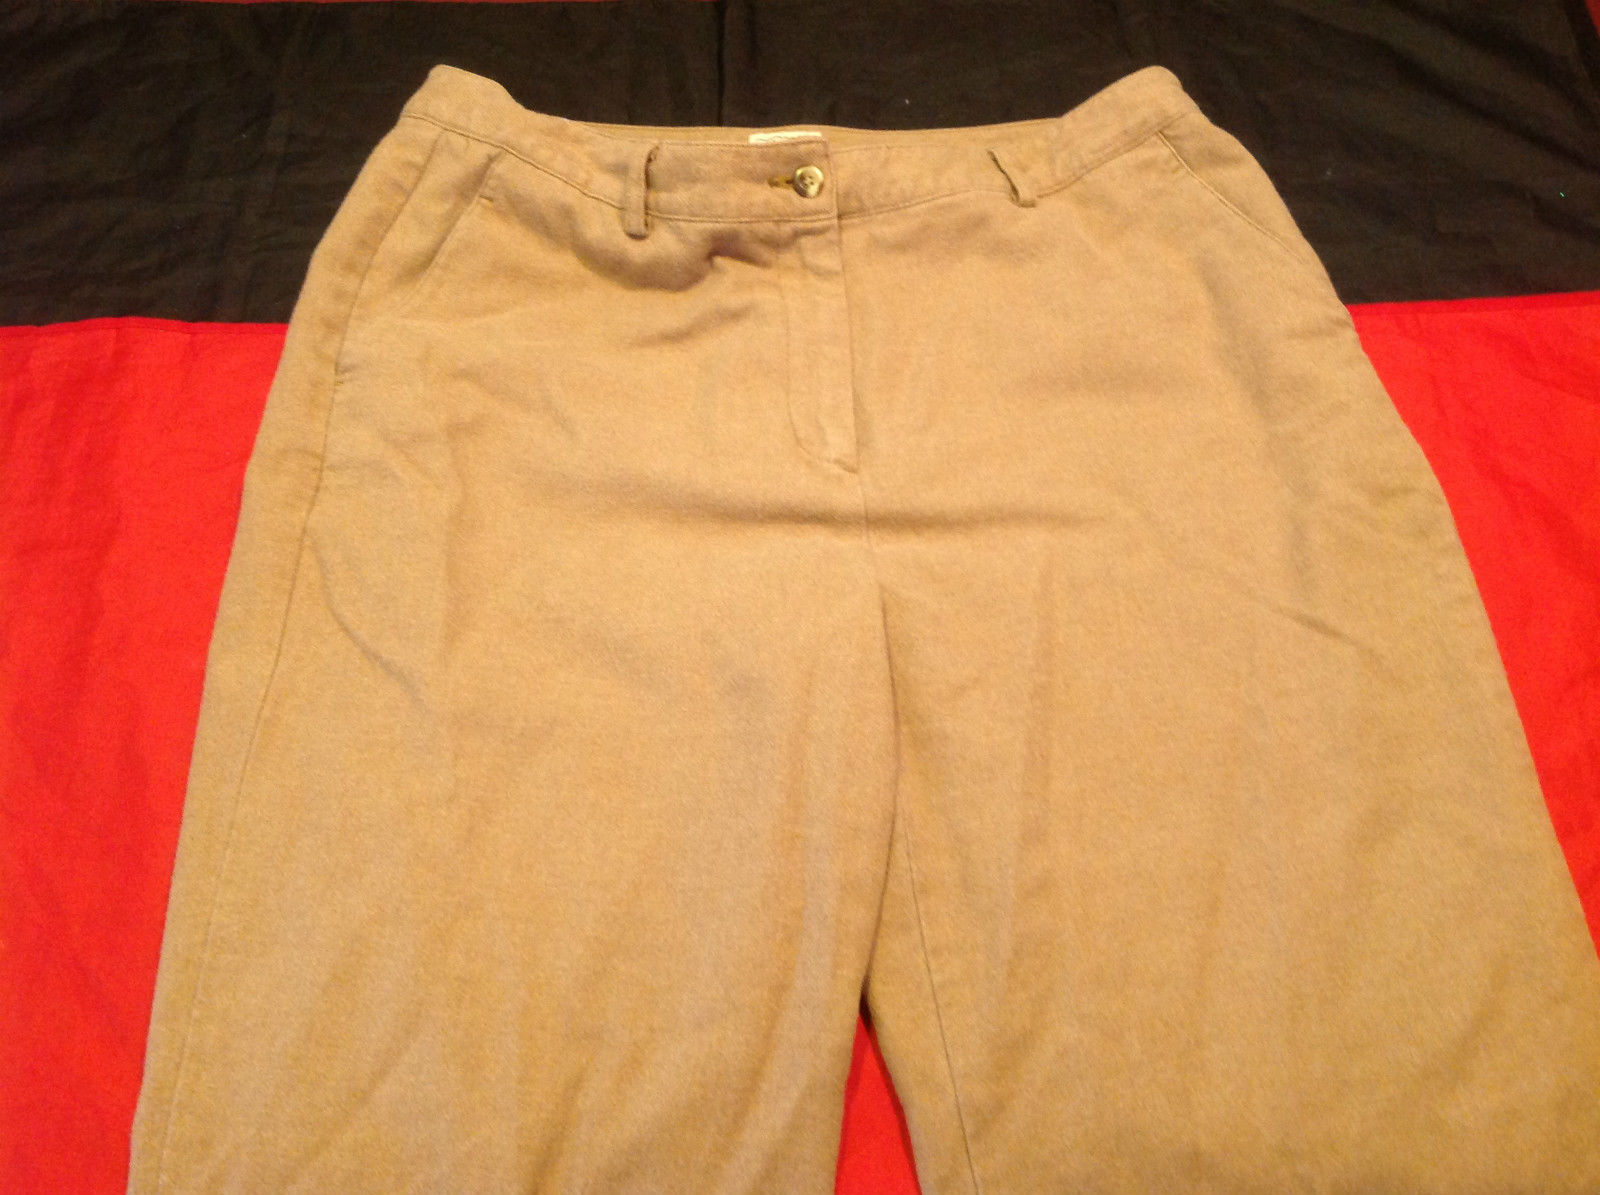 L.L. Bean Size 15 Regular Mustard Colored Ladies Casual Pants